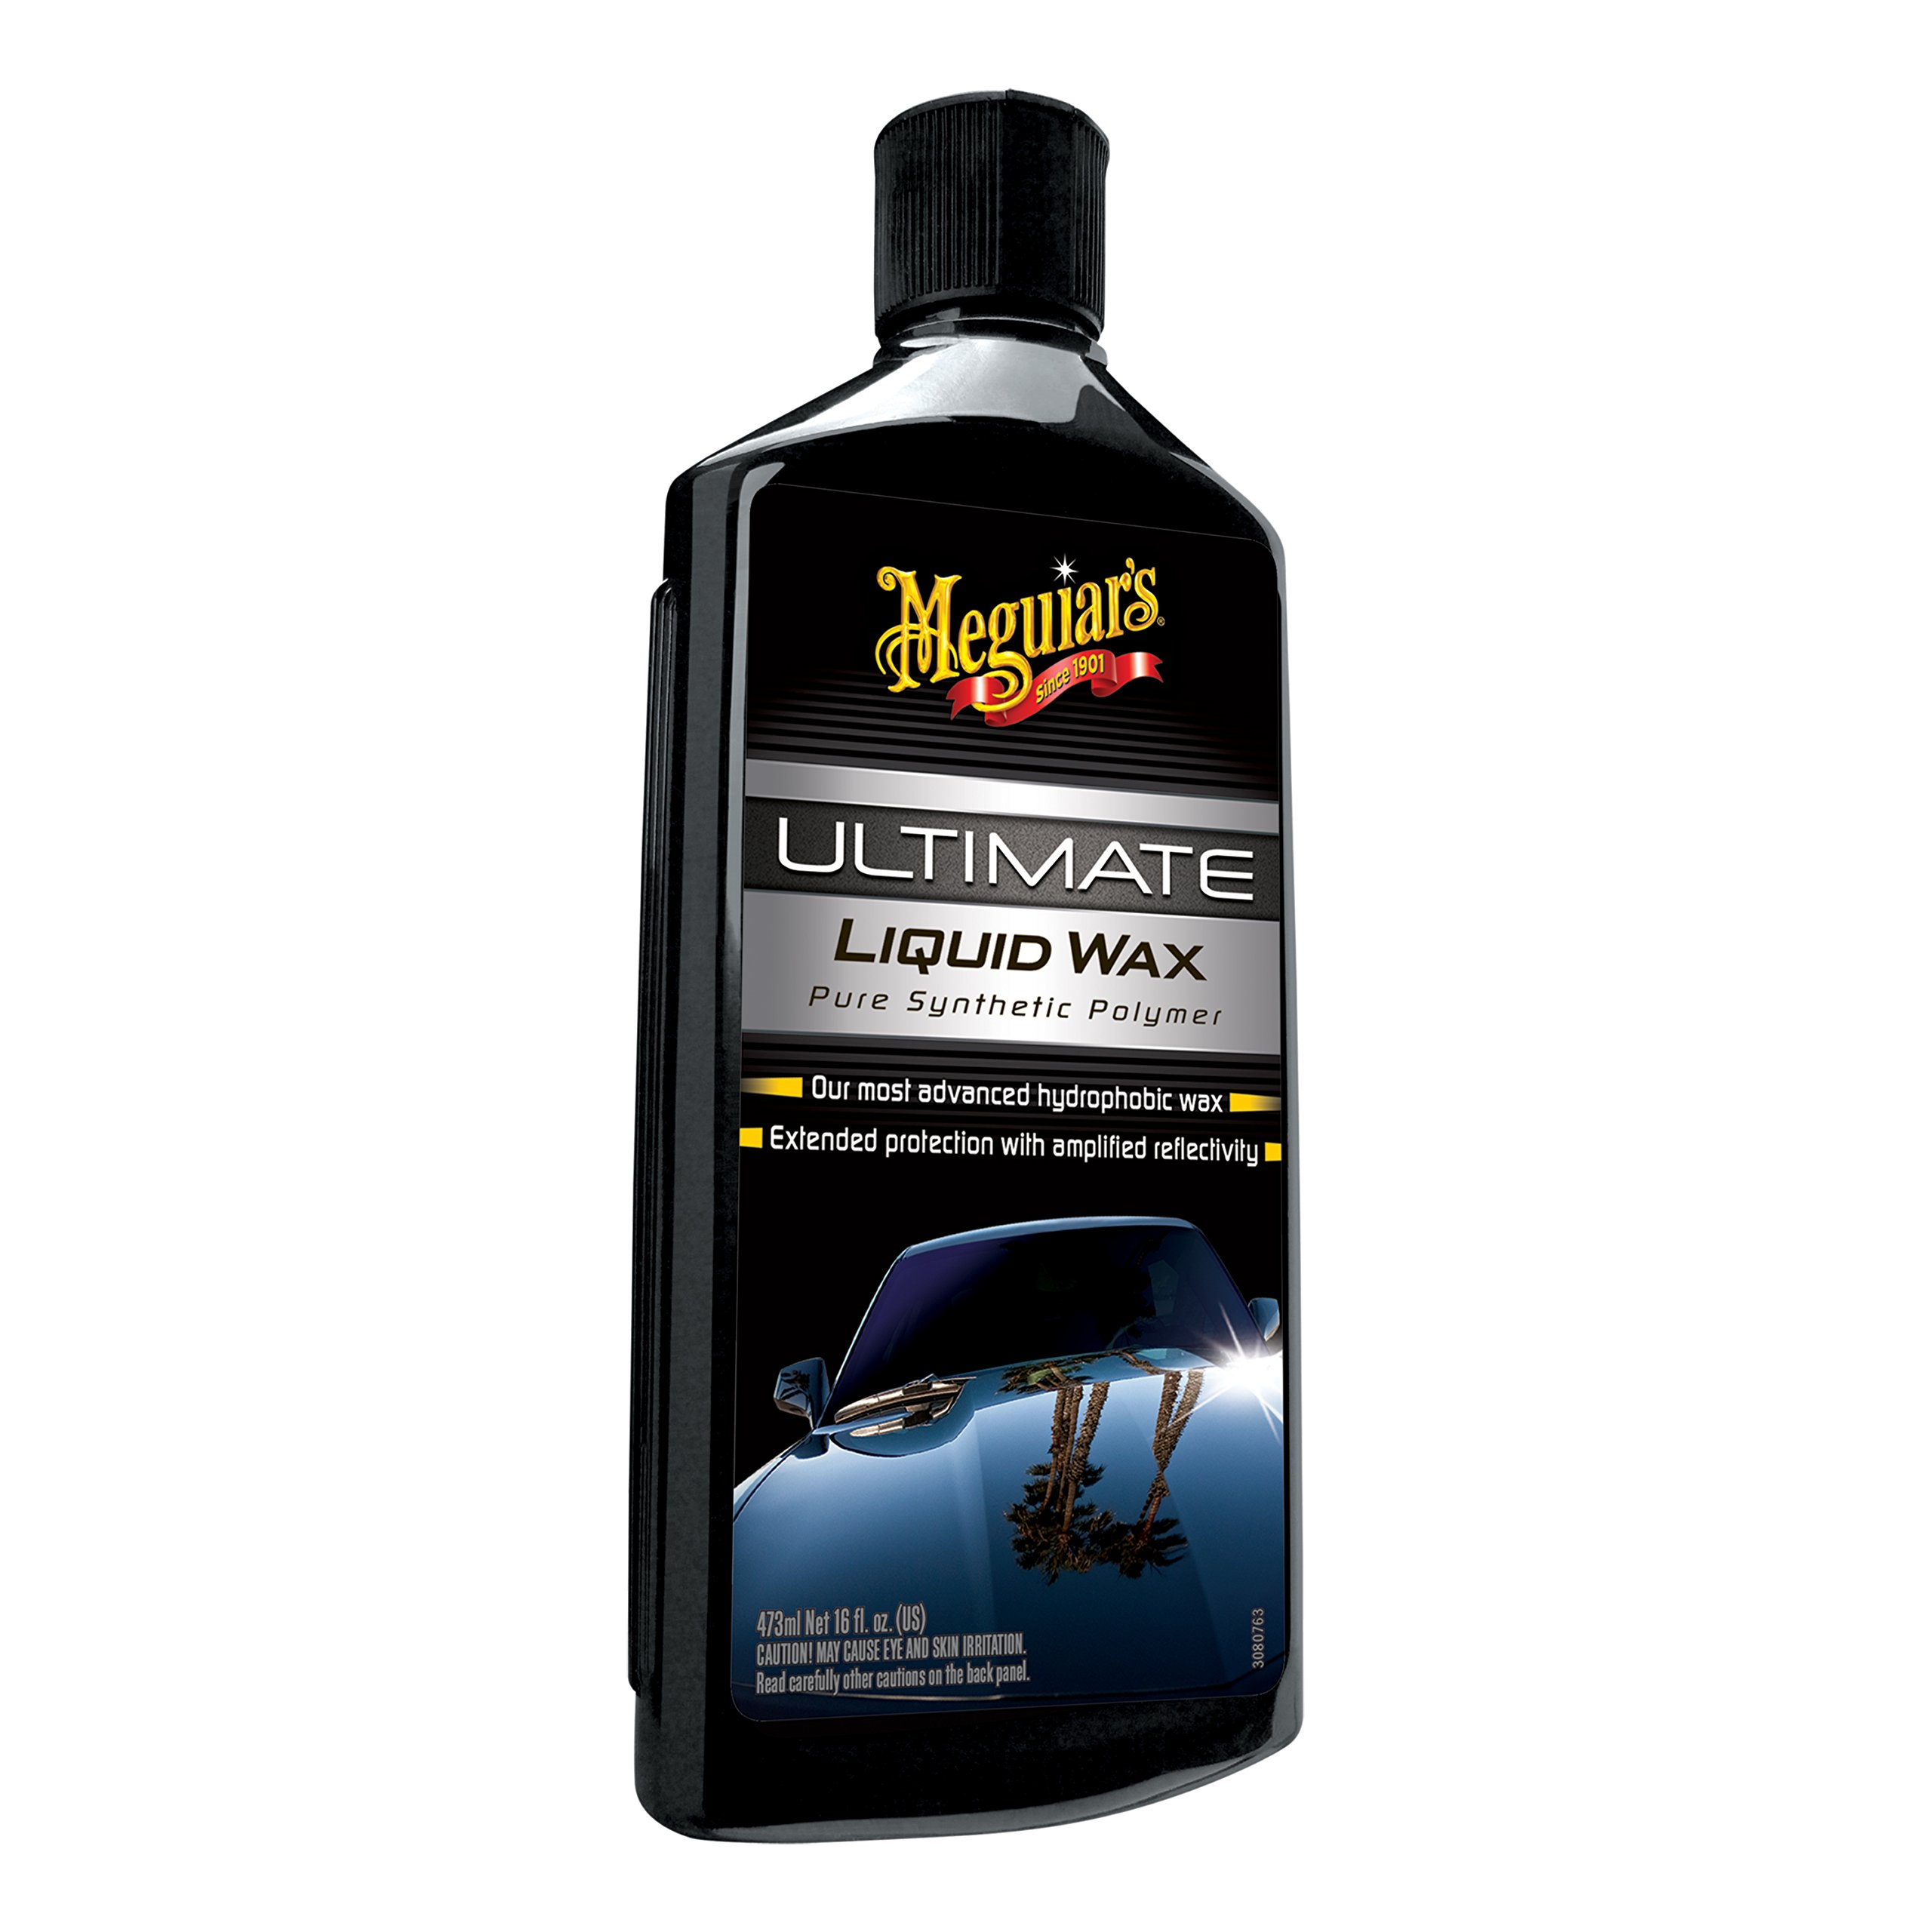 meguiars-g18216-ultimate-liquid-wax-16-oz-best-car-clean-wash-products-reviews